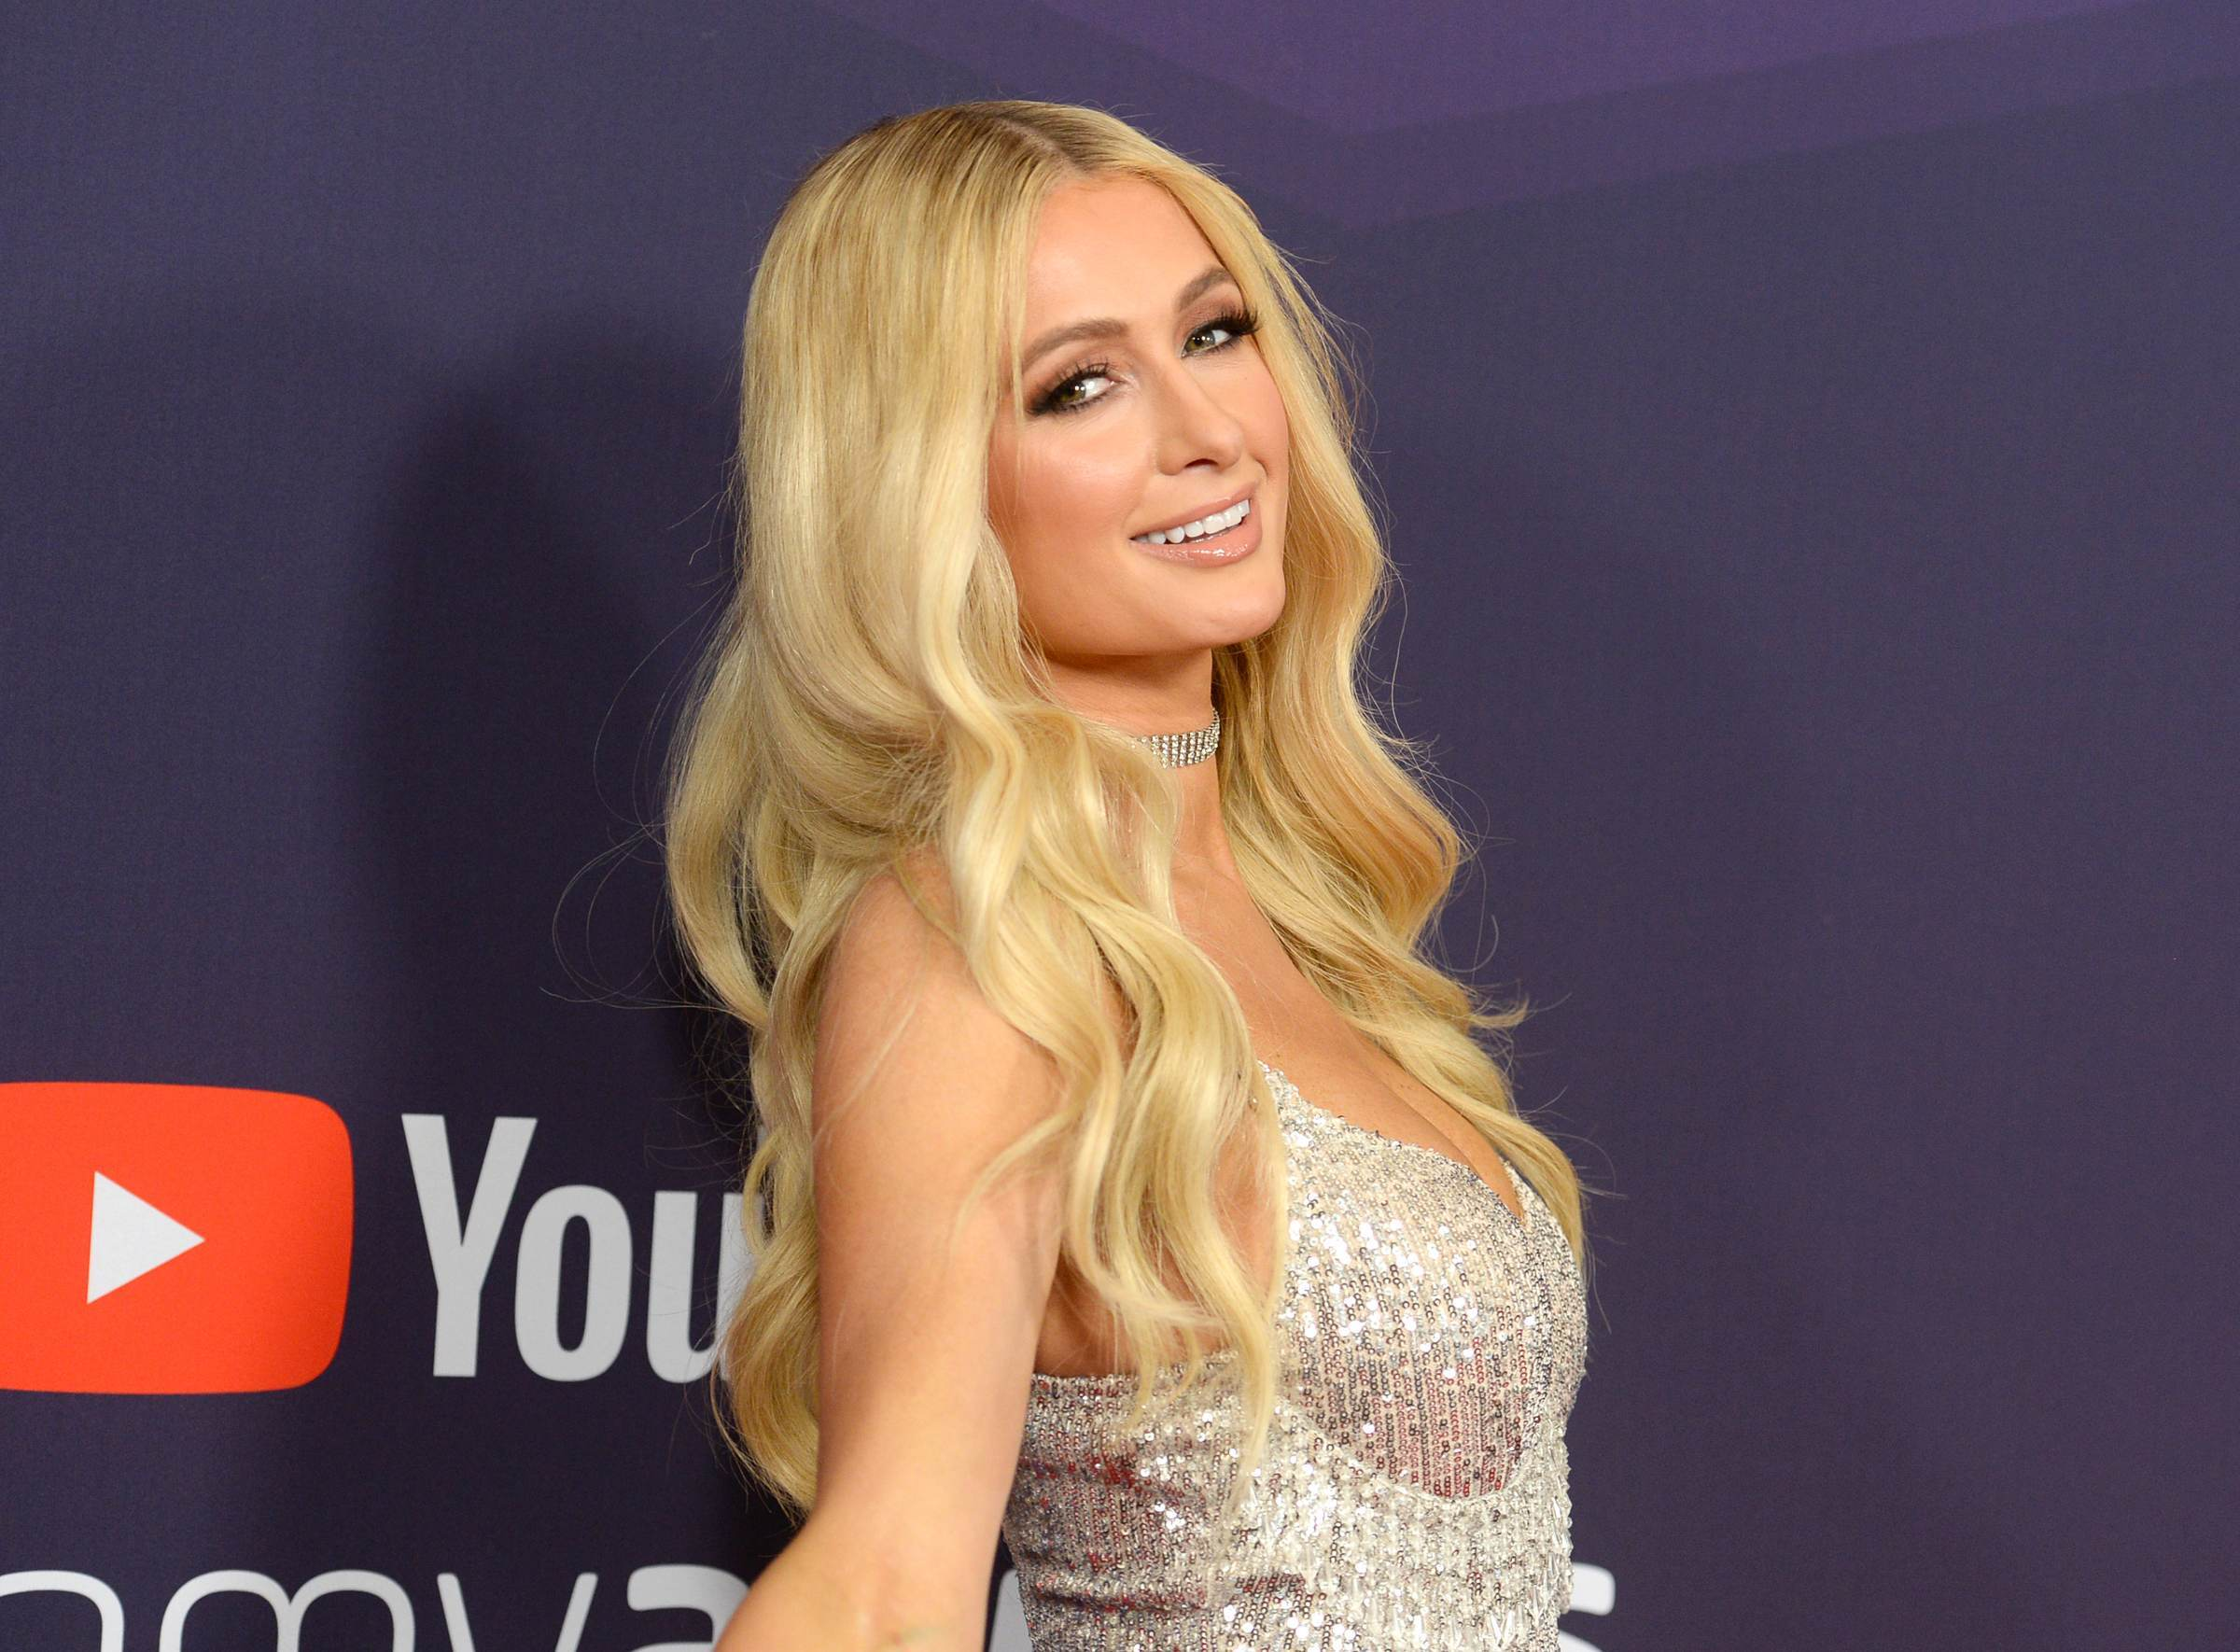 Heres what Paris Hilton thinks about her infamous sex